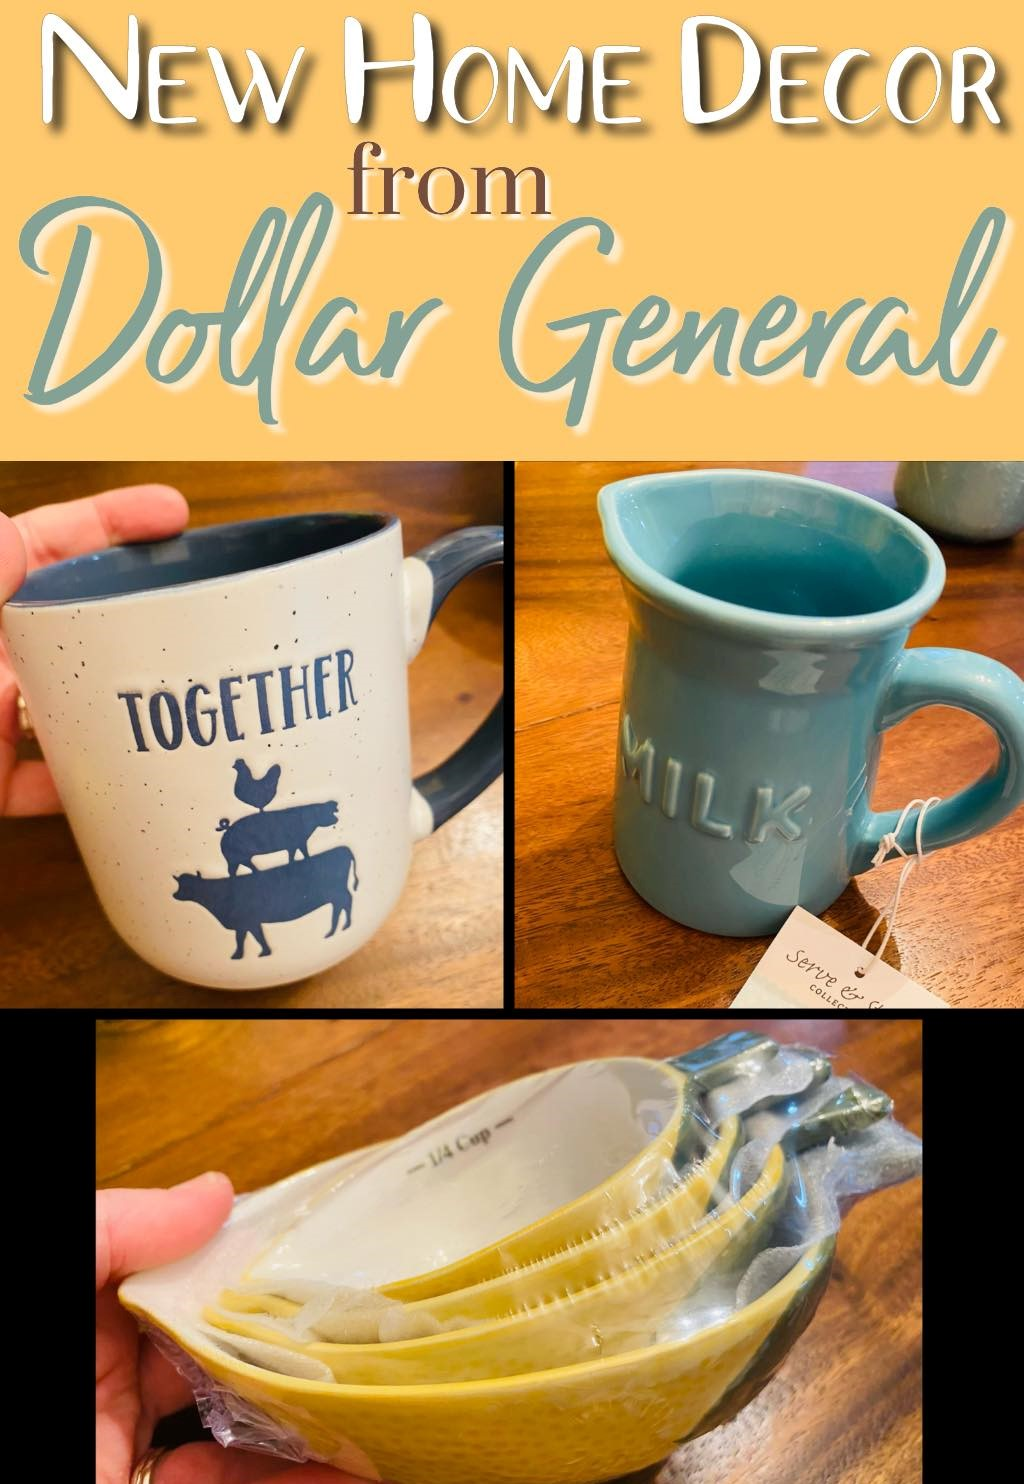 New Home Decor Items from the Dollar General!